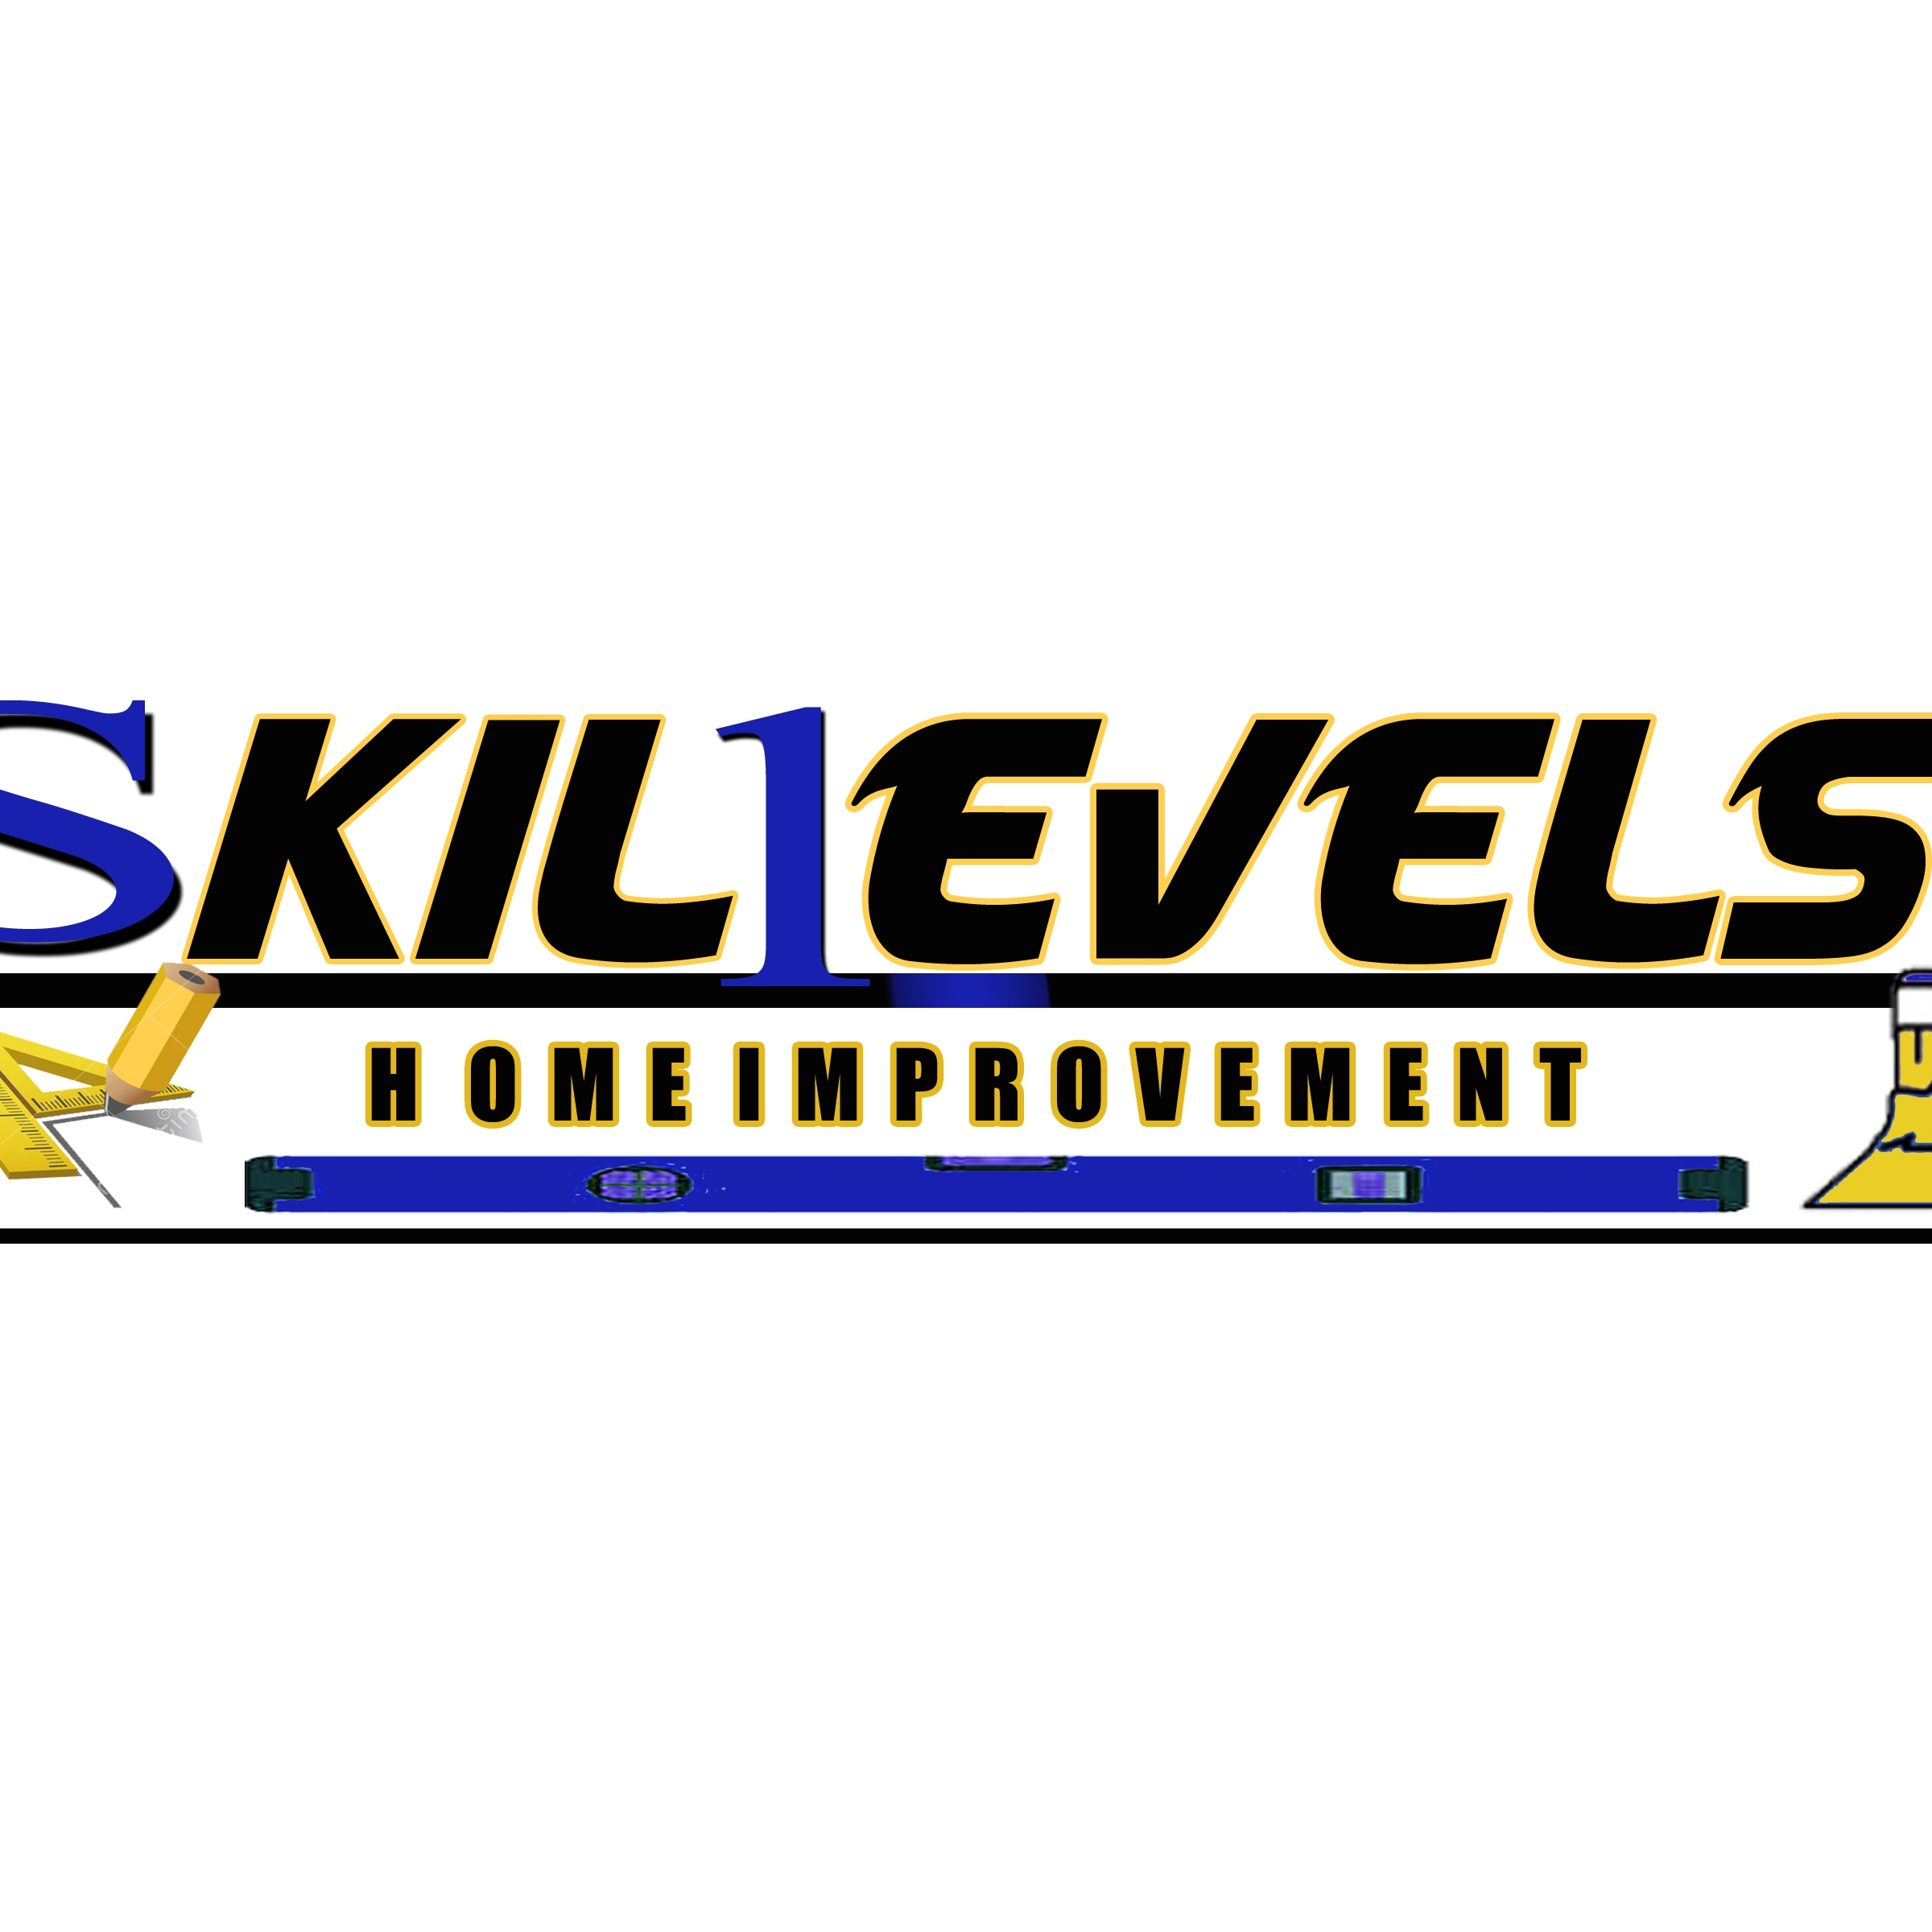 SkilLevels Home Improvement